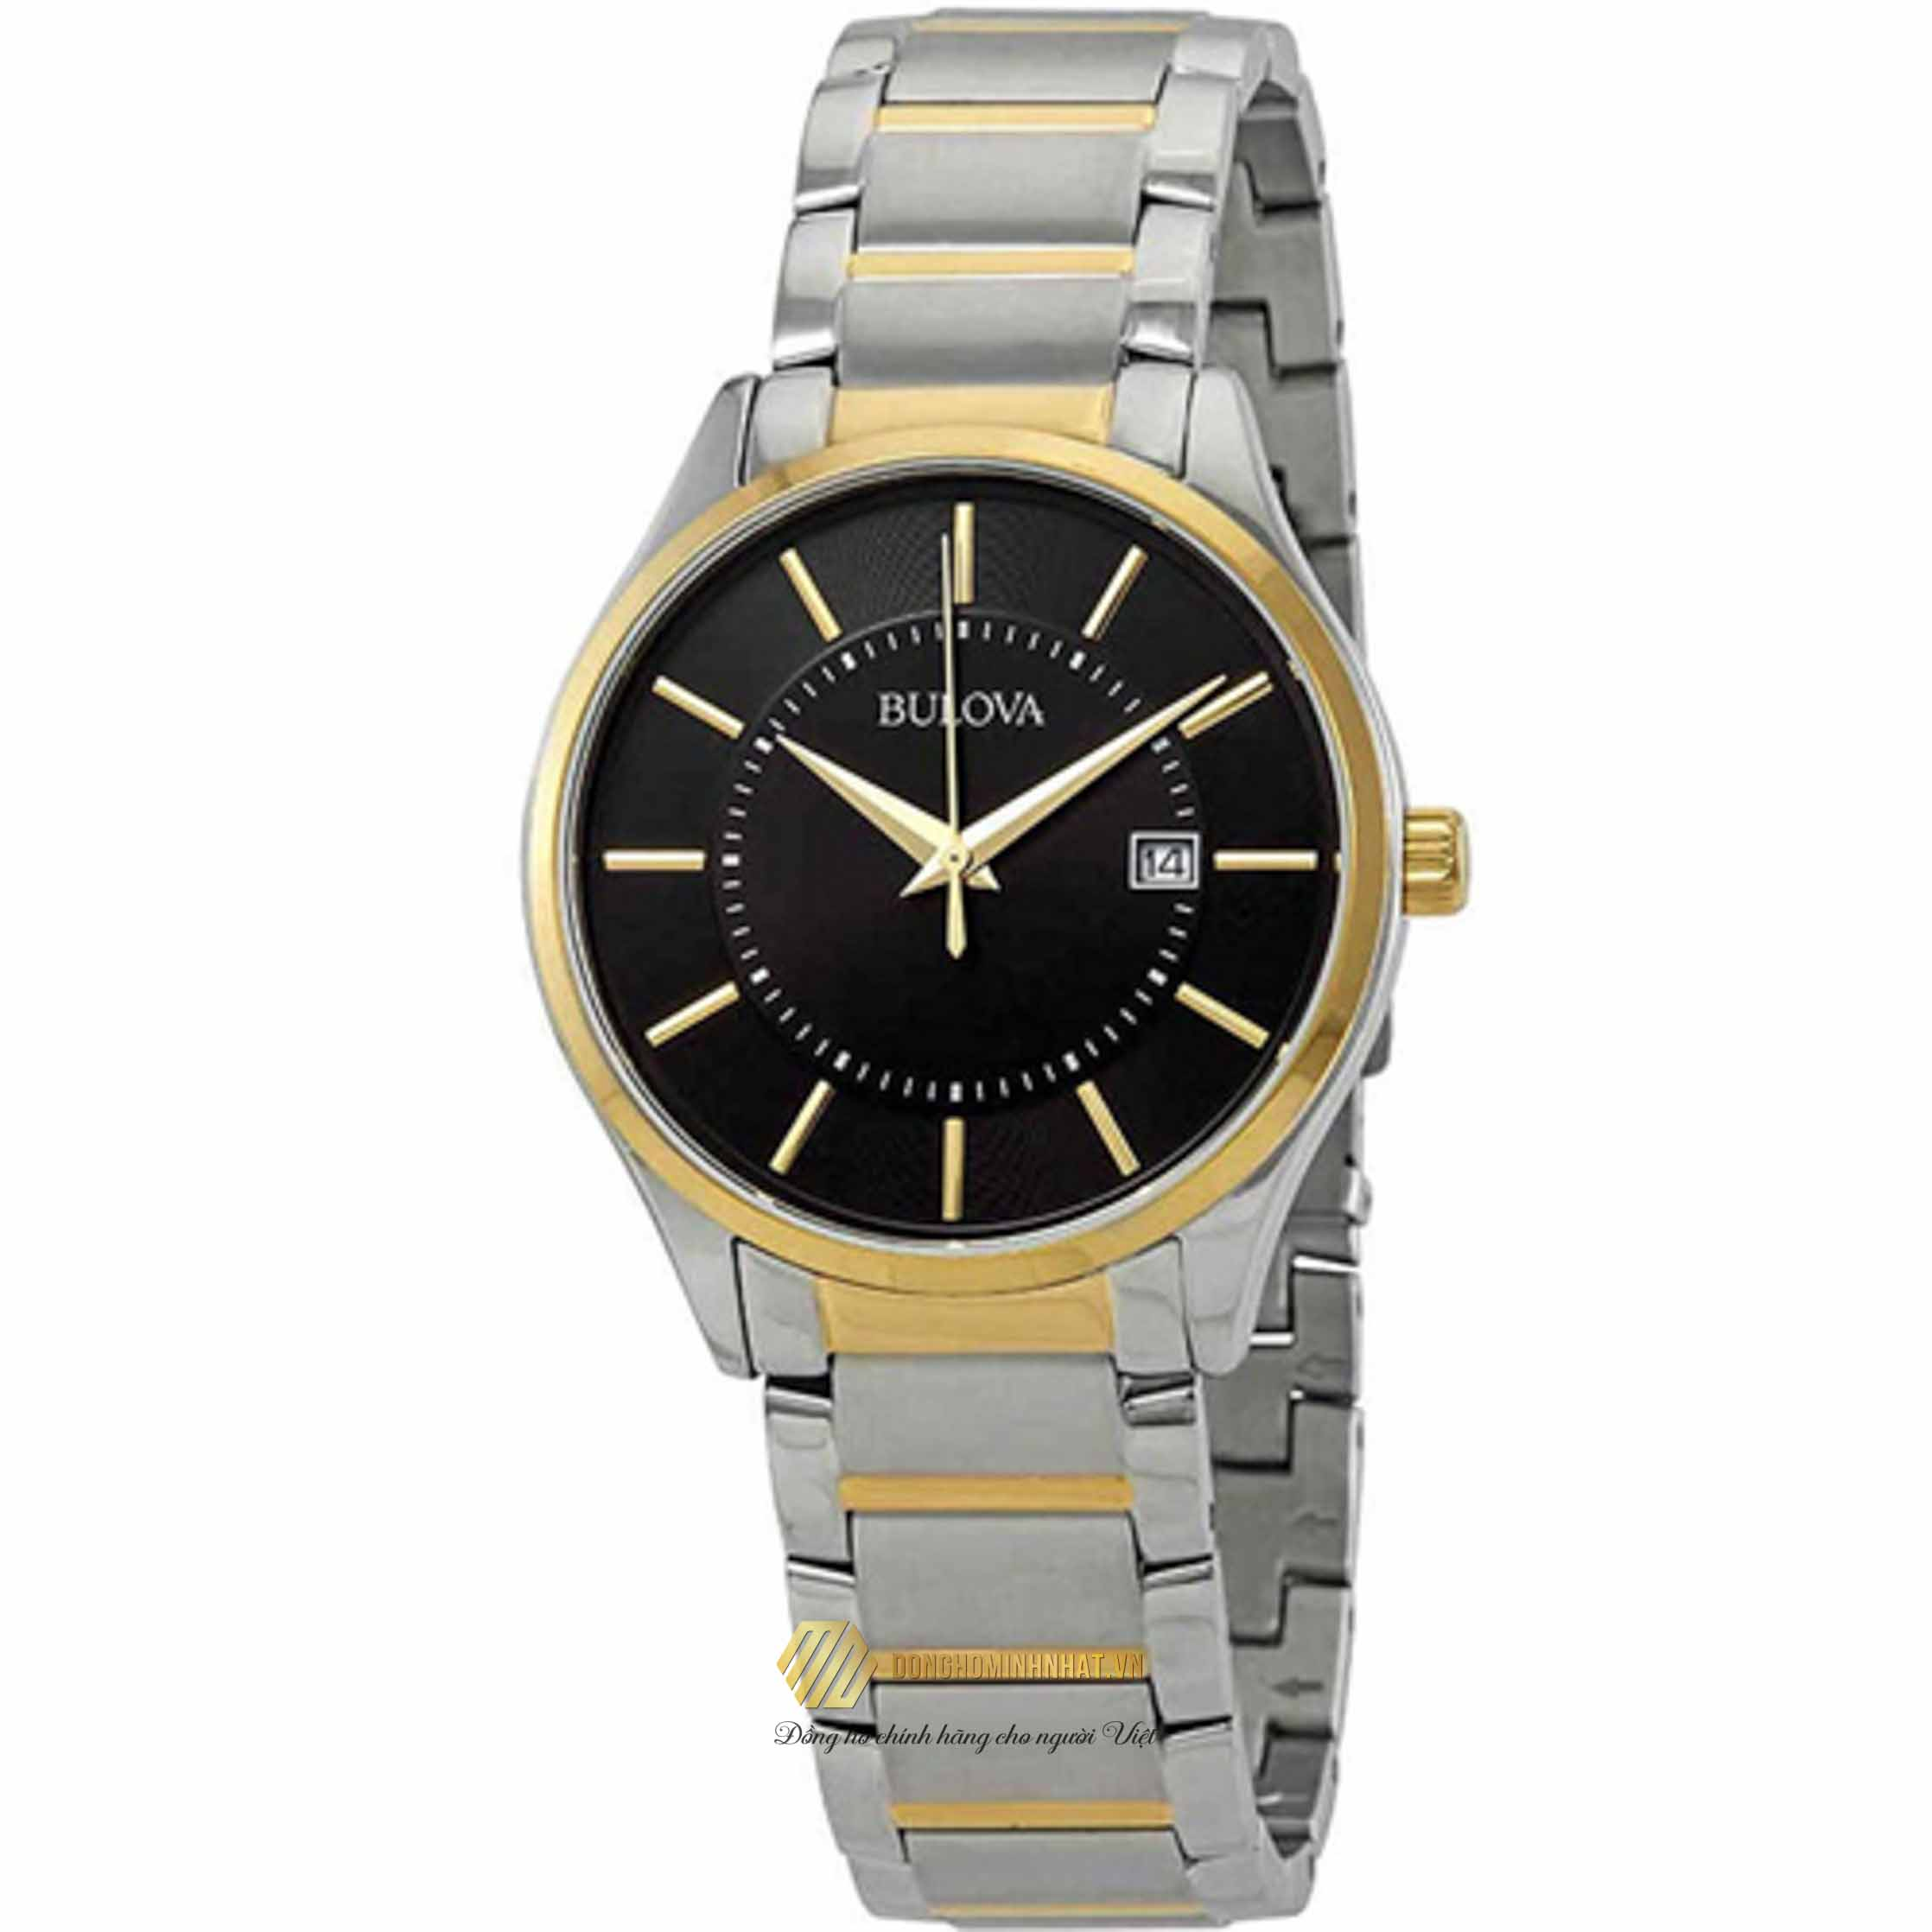 ĐỒNG HỒ BULOVA 98B290 Men's Two Tone Bracelet Black Face With Date